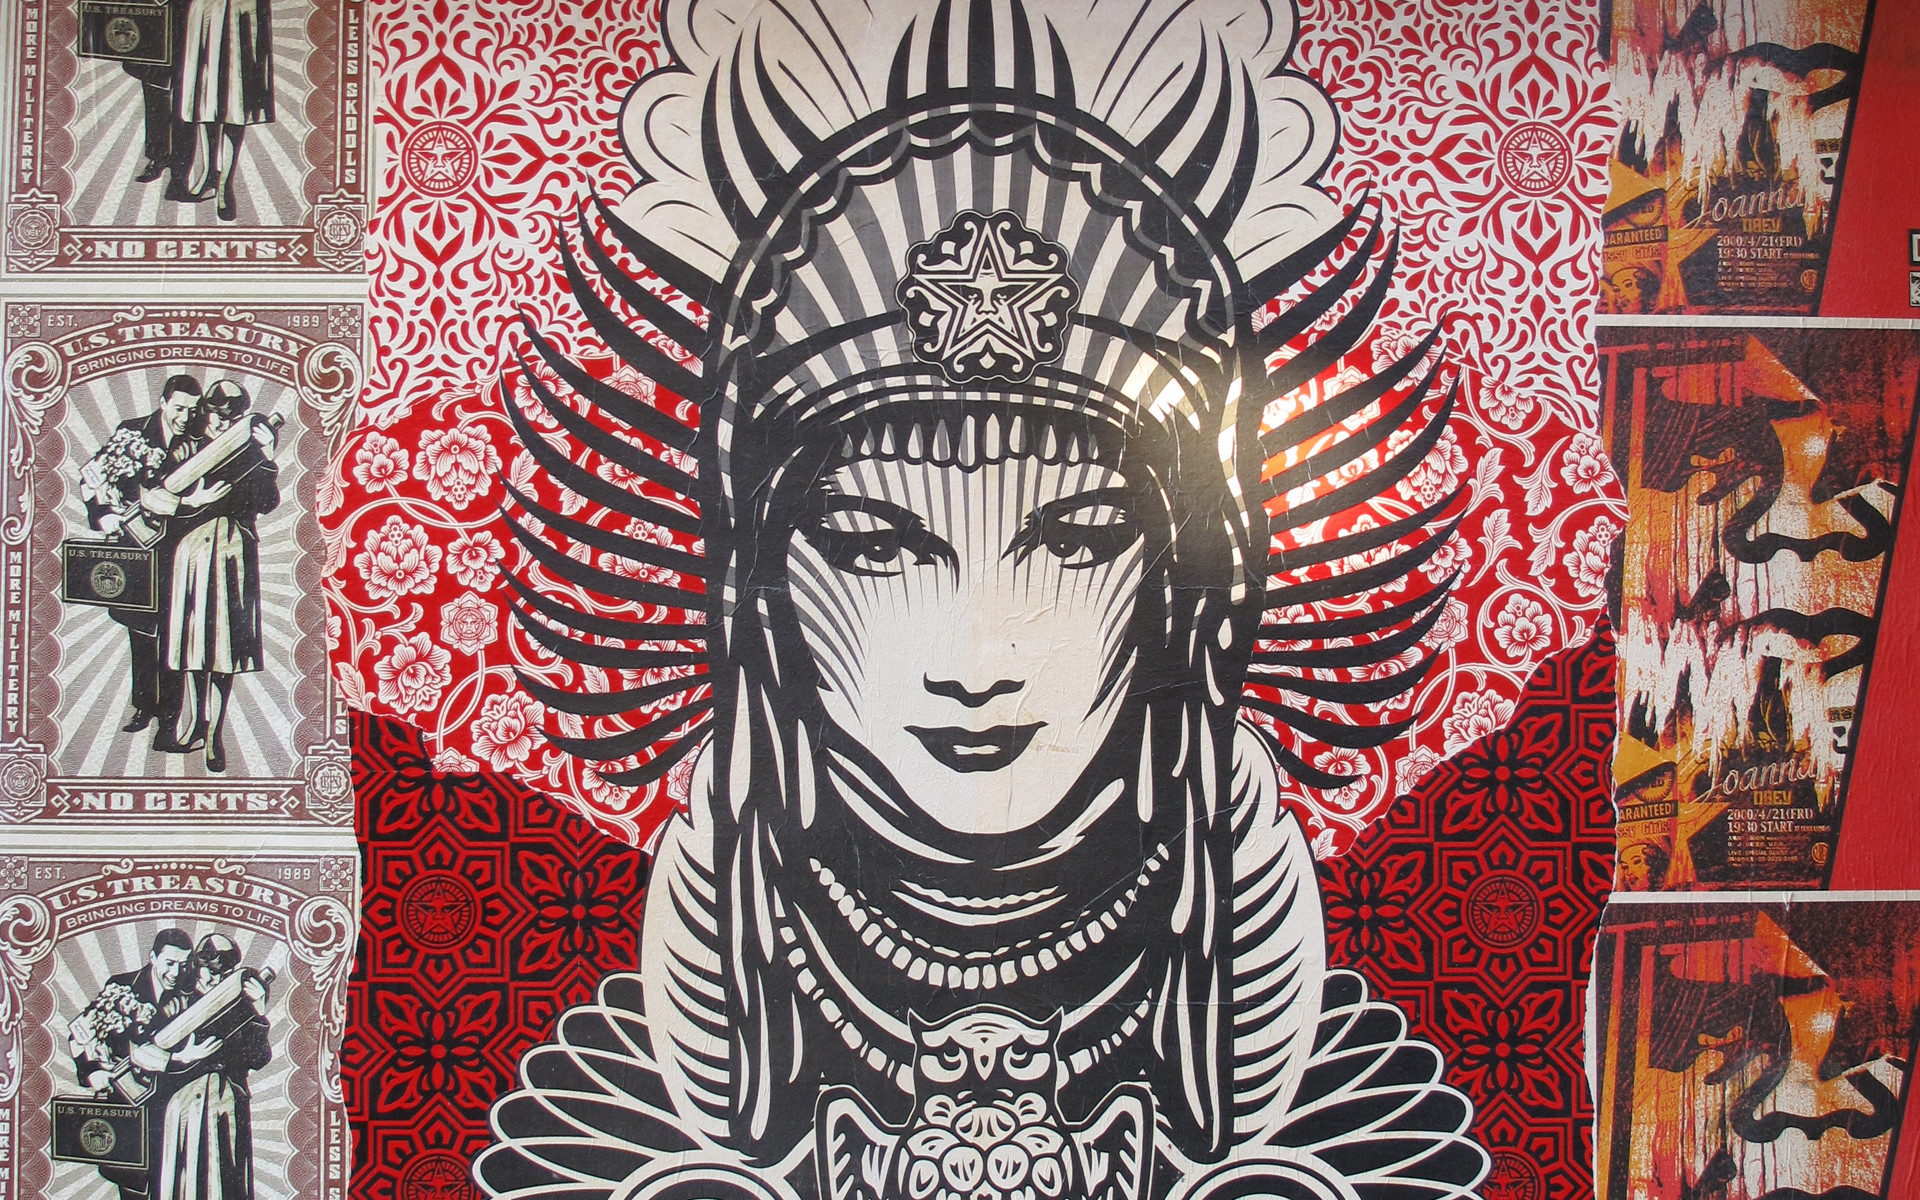 1920x1200 The real street giant shepard fairey and obey propaganda bananas jpg   Marc ecko mural art